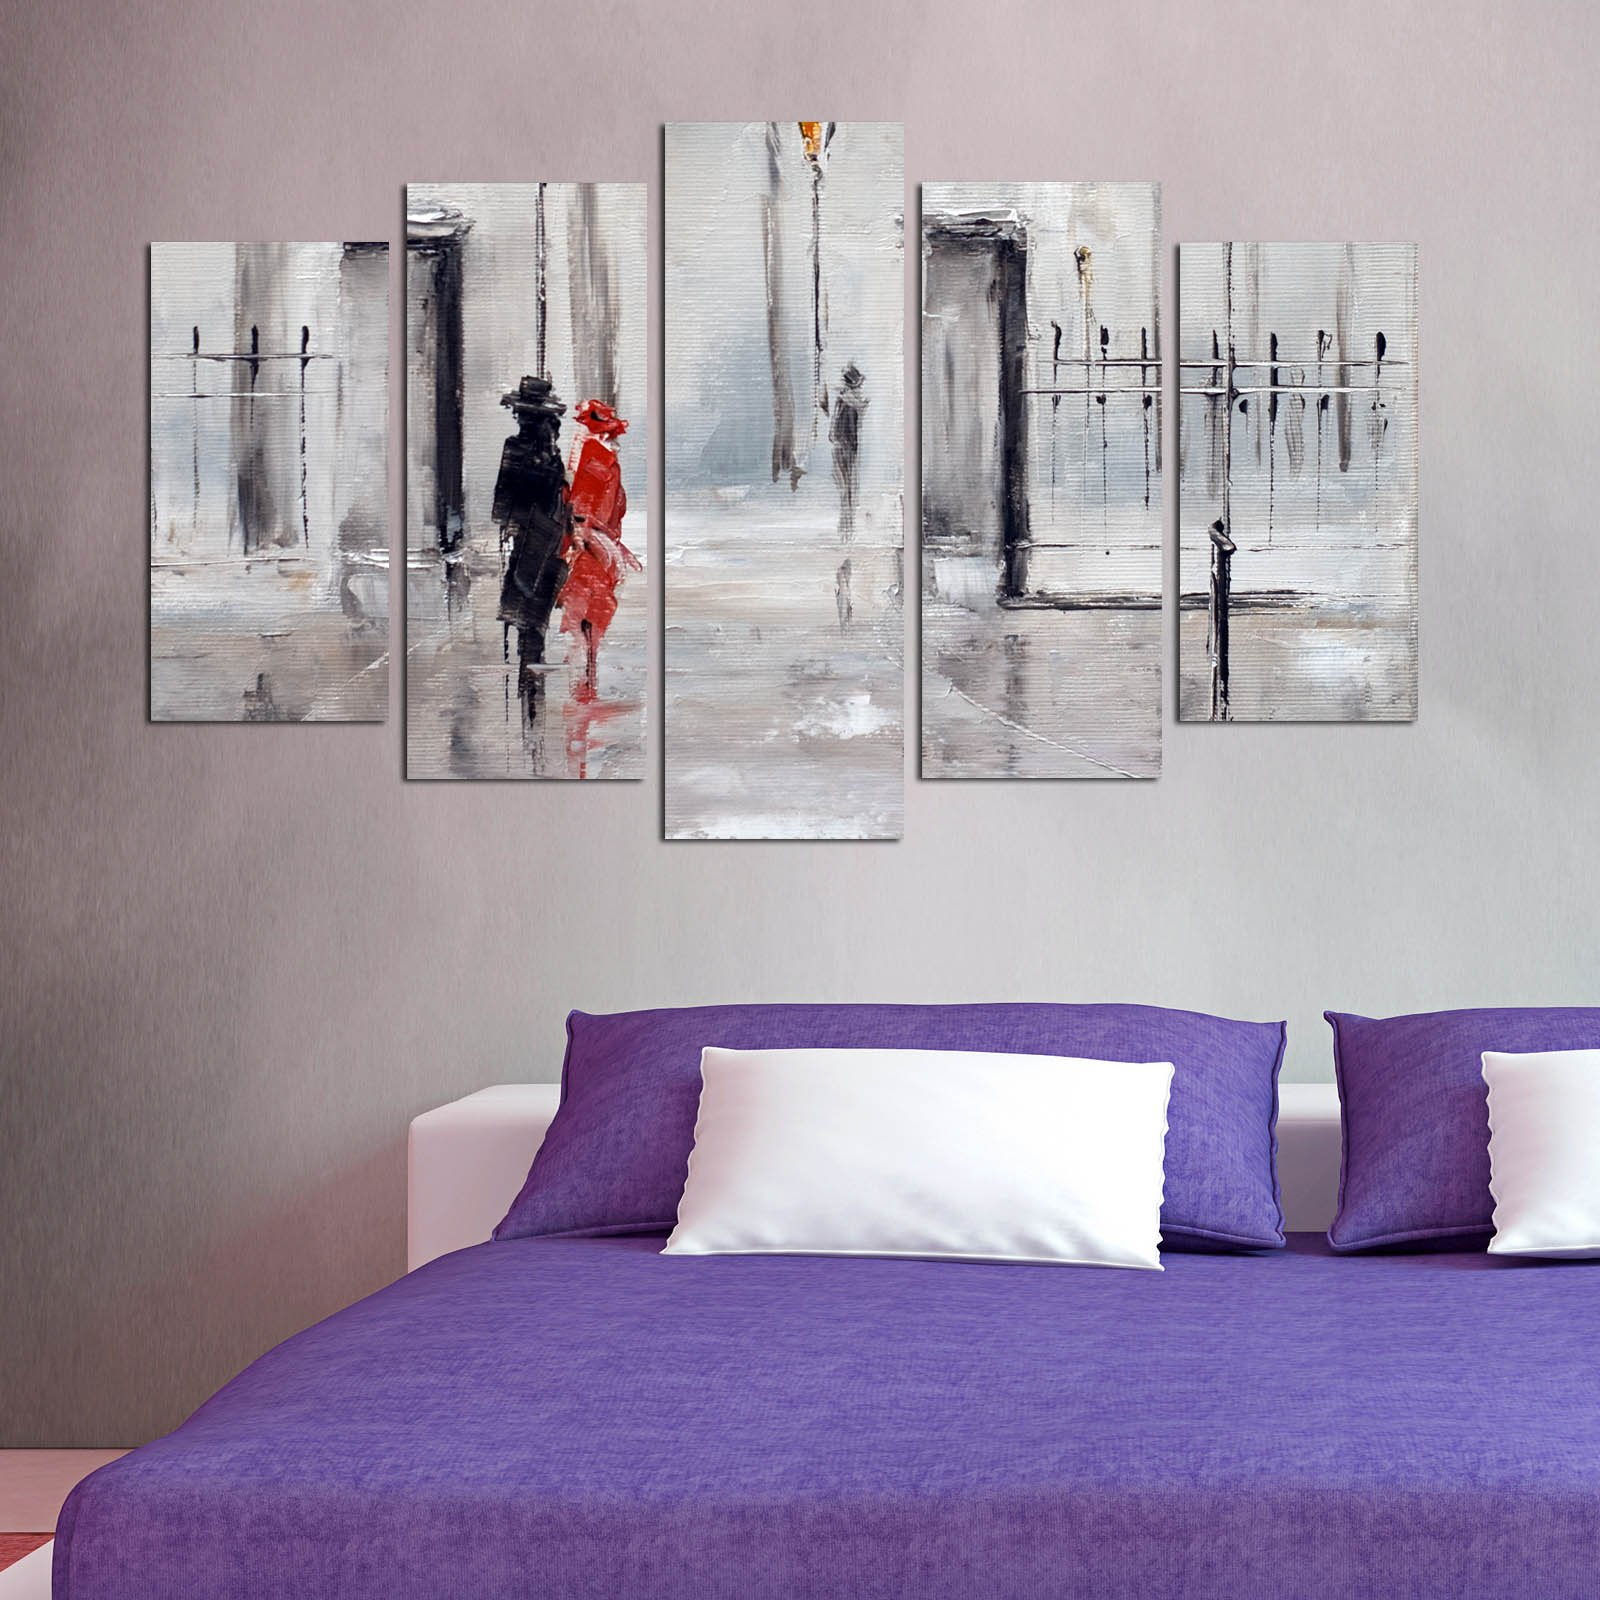 LaModaHome Love MDF Wall Art - Man in Black and Red Dressed Woman are Walking, Couples - Ready to Hang Painting, Total Size (43'' x 24'') - 5 Panels - Wall Hanging for Living Room, Bedroom, Dorm